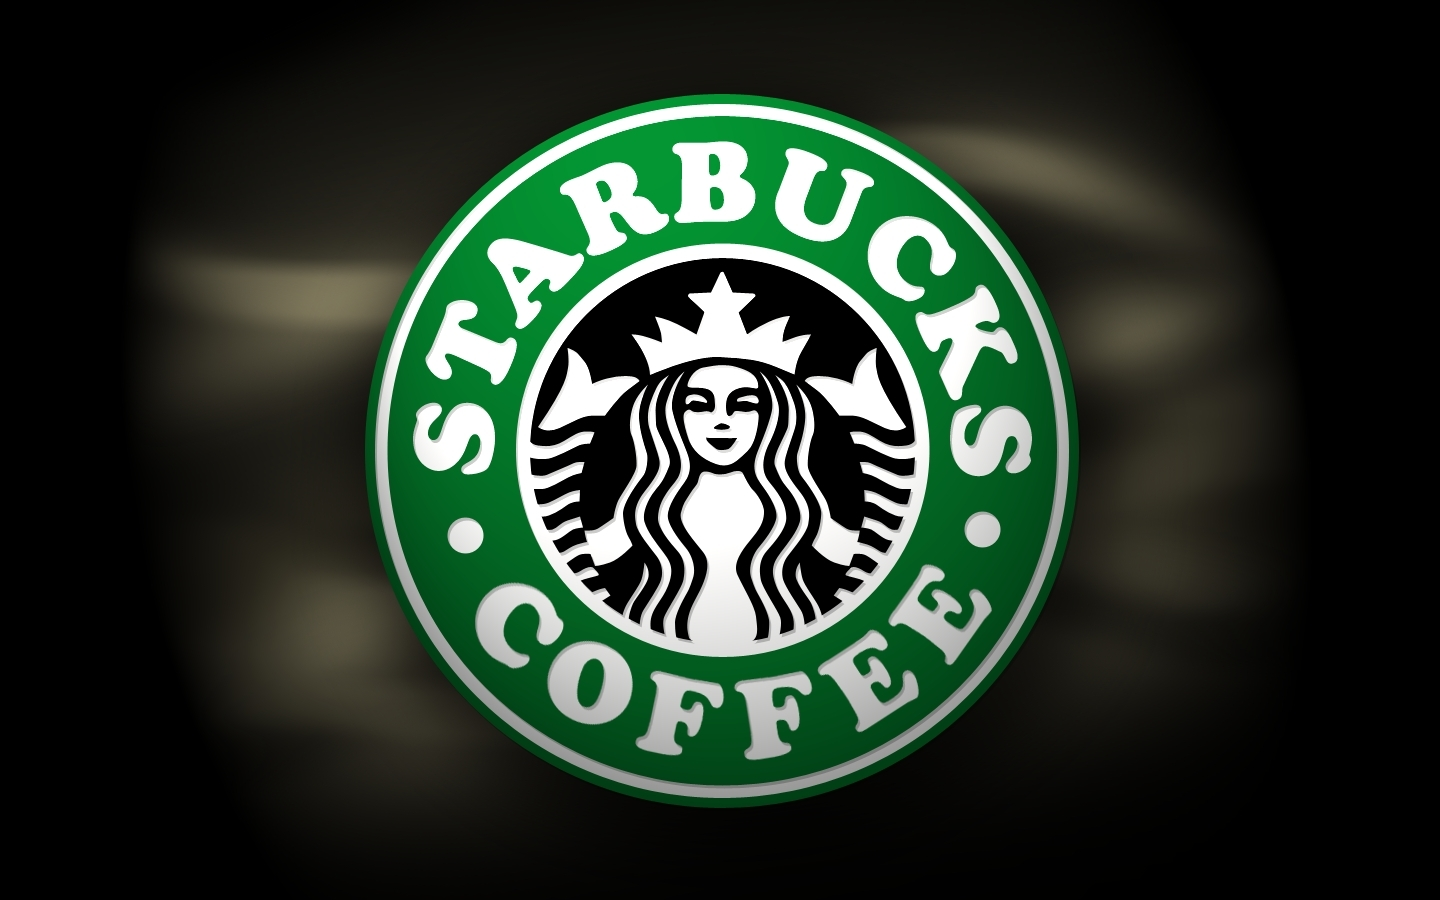 The experience of starbucks customers consumer value creation image biocorpaavc Image collections